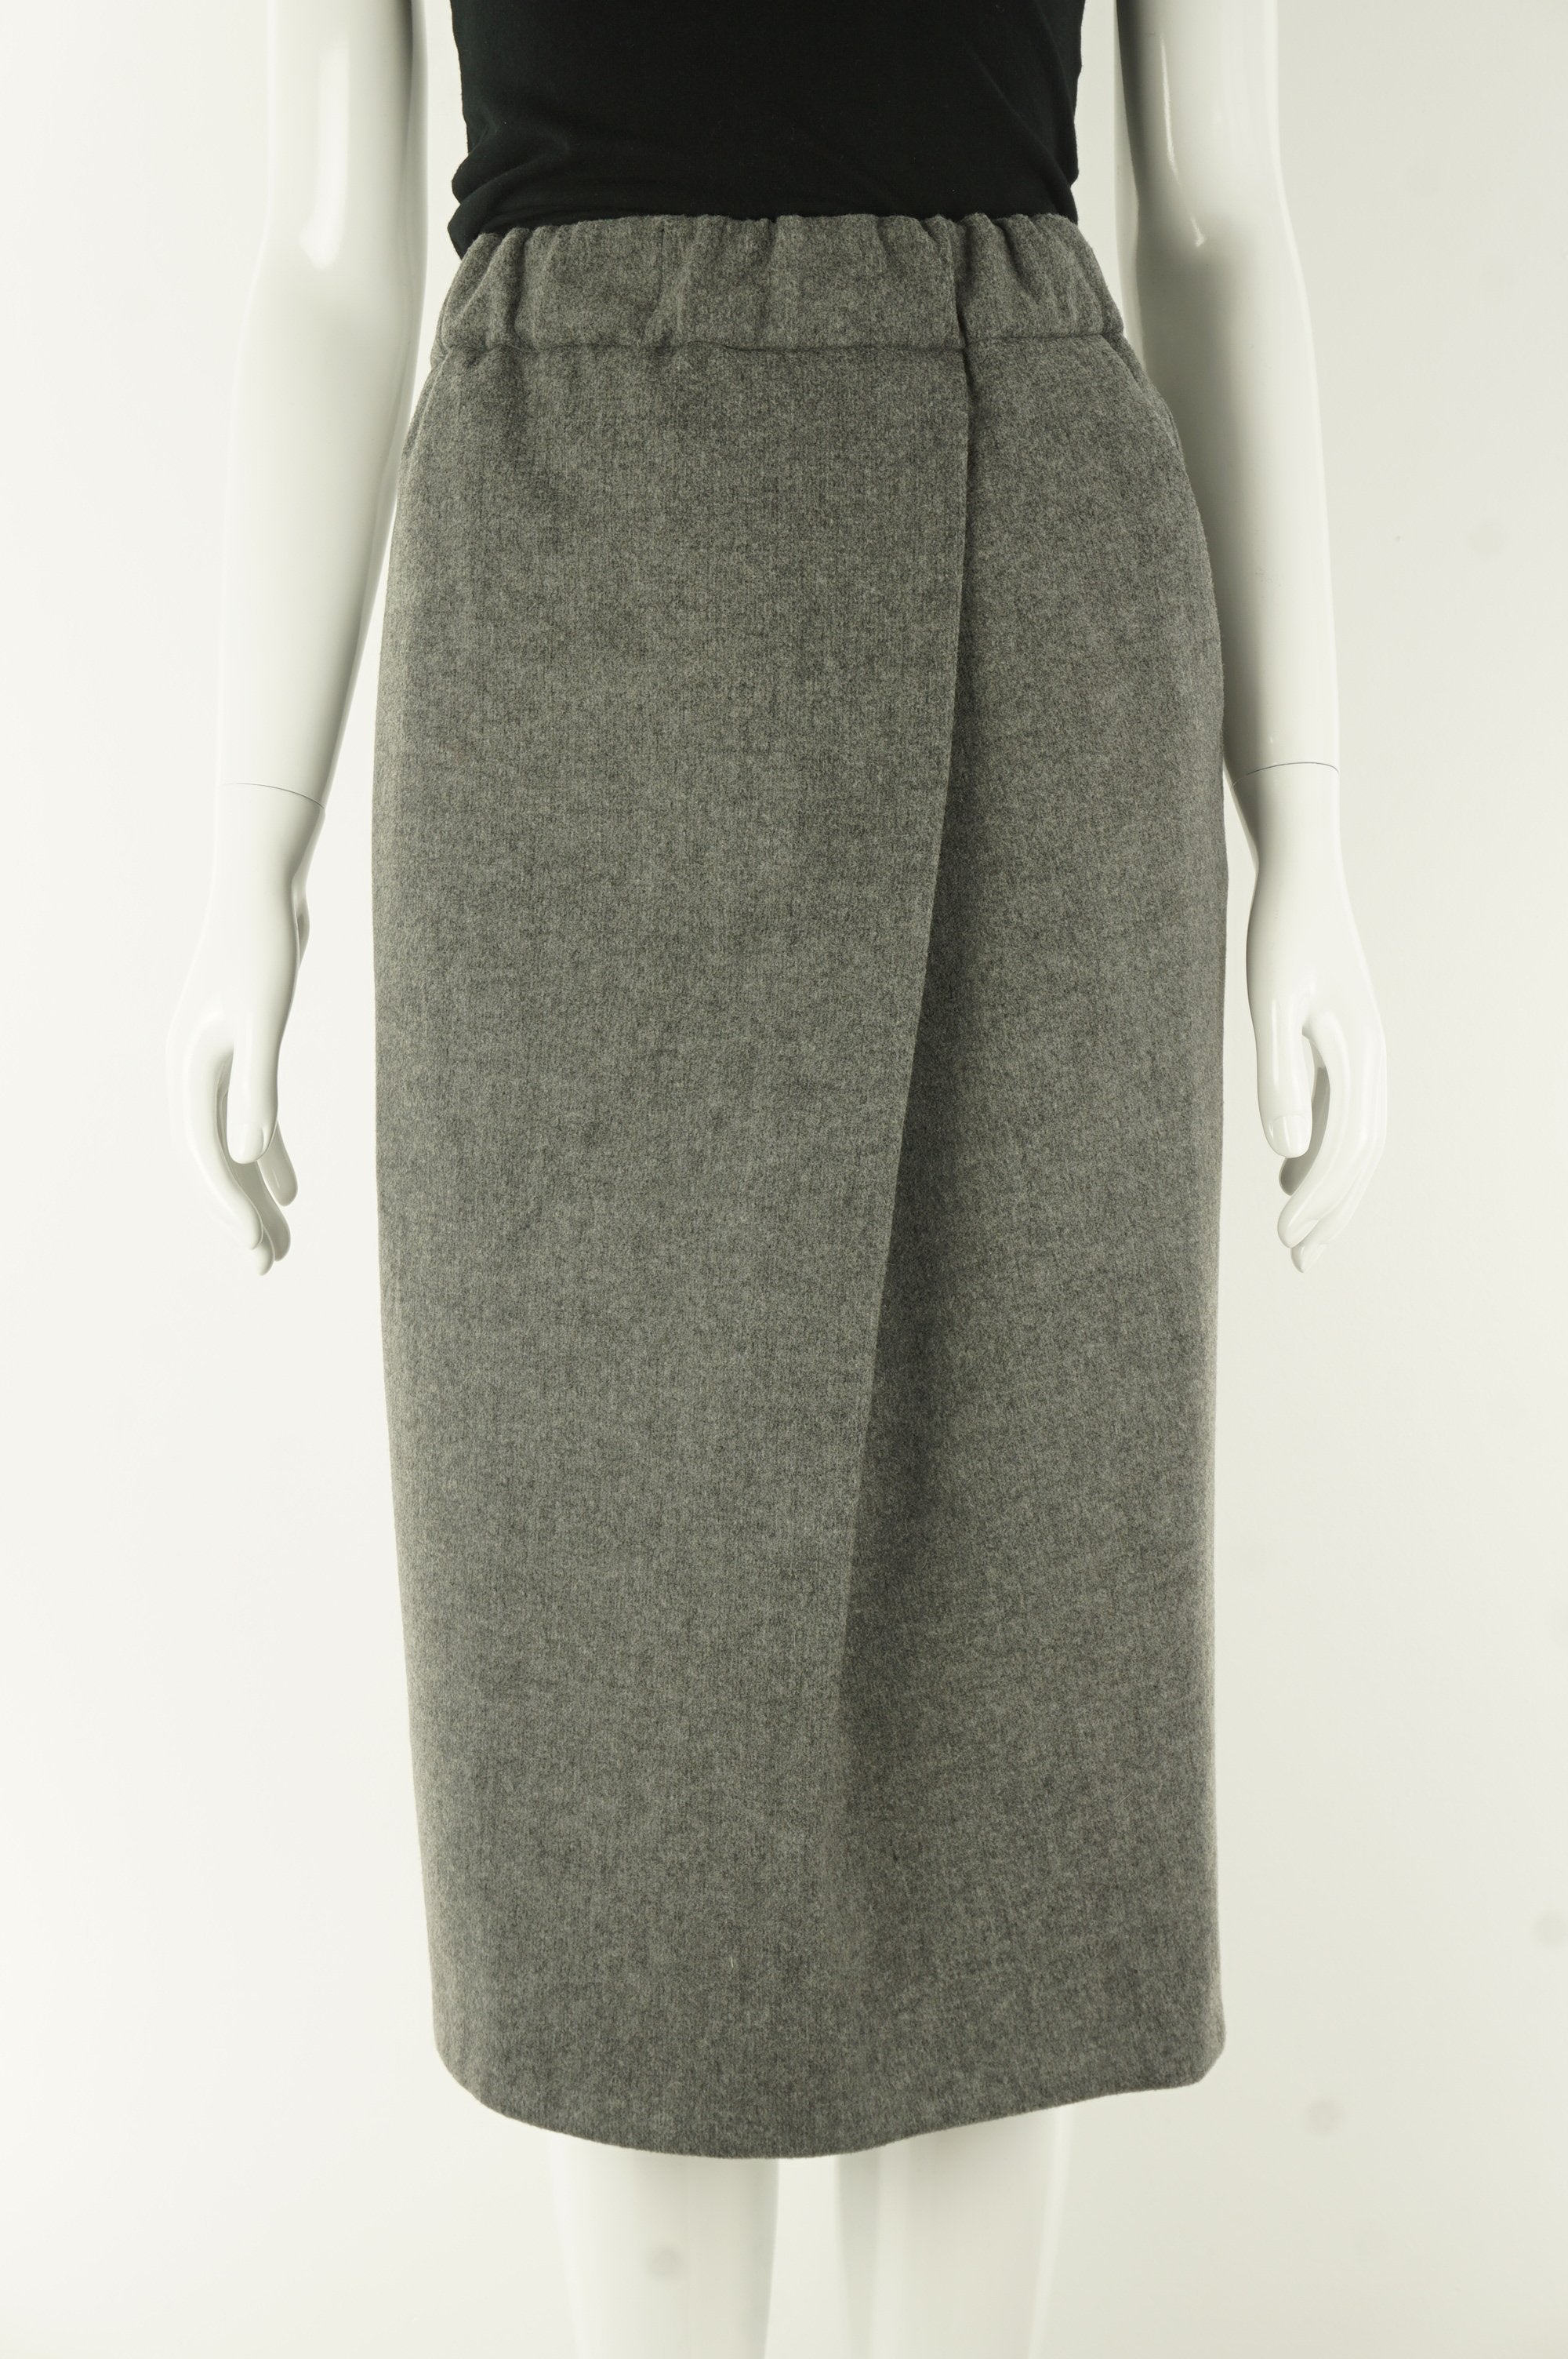 Le Fou Wilfred Wool Winter Pencil Skirt, Sitting in the office the whole day but still have to embrace the cold while walking to lunch? This wool skirt covers it all. Not even mentioning the comfortable elastic waistband!, Grey, 43% Polyester, 22% wool, 19% viscose, 7% polyamide, 6% cotton, 3% elastane, women's Skirts & Shorts, women's Grey Skirts & Shorts, Le Fou Wilfred women's Skirts & Shorts, women's winter warm wrap skirt, Aritzia women's wool wrap skirt